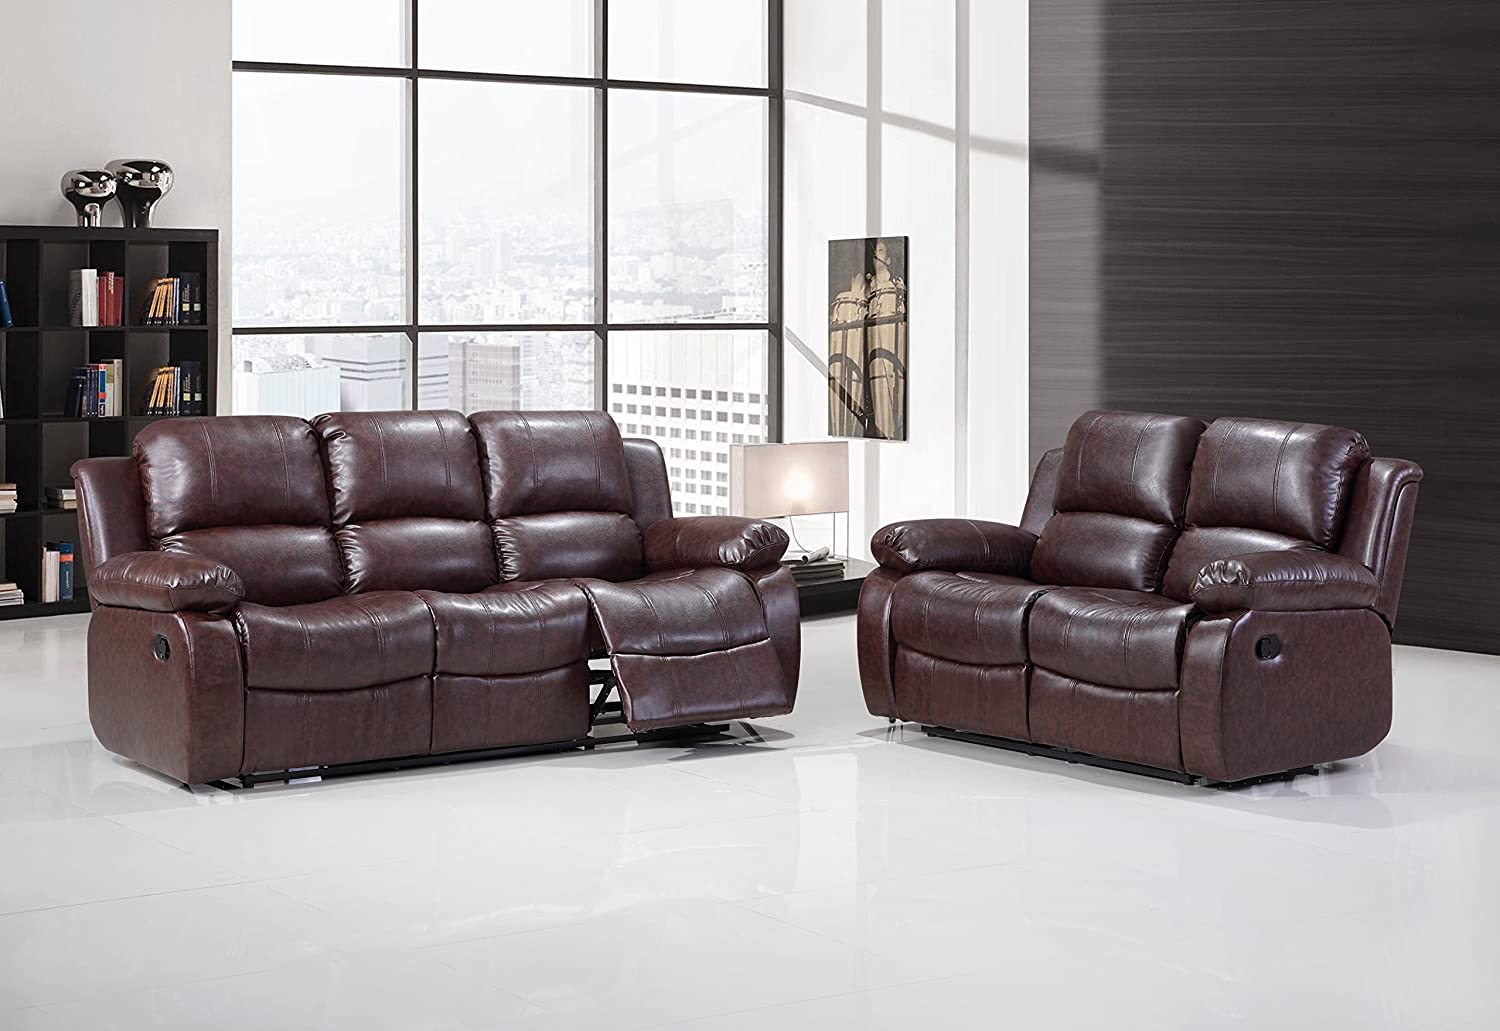 Hodedah Import HI7333 BROWN 3 Piece Sofa Recliner